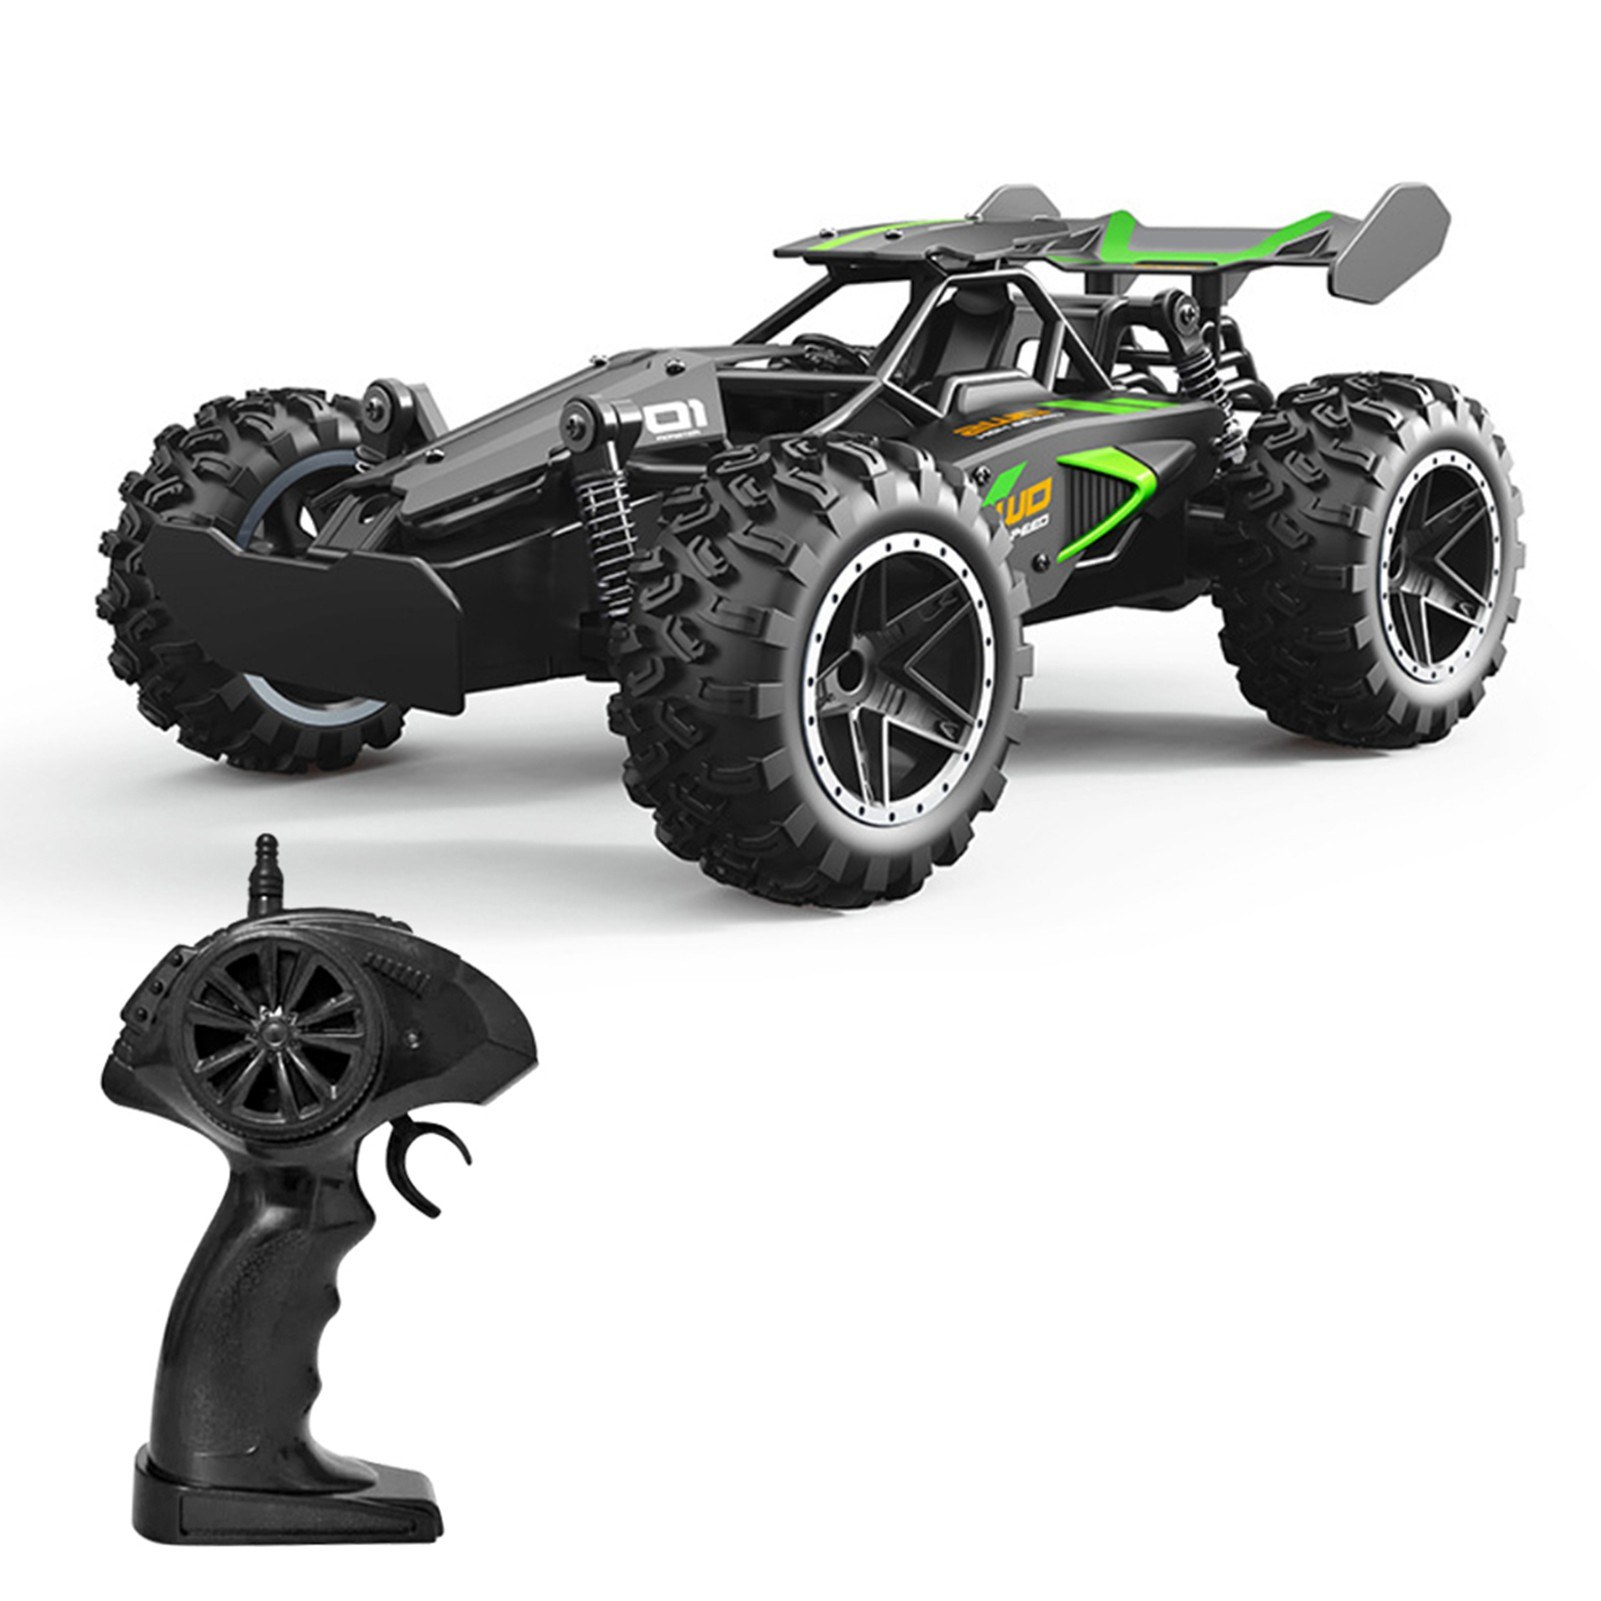 60% OFF 2.4Ghz 1:18 Racing Car Off Road RC Trucks Gifts for Kids Adults, Free Shipping $35.99